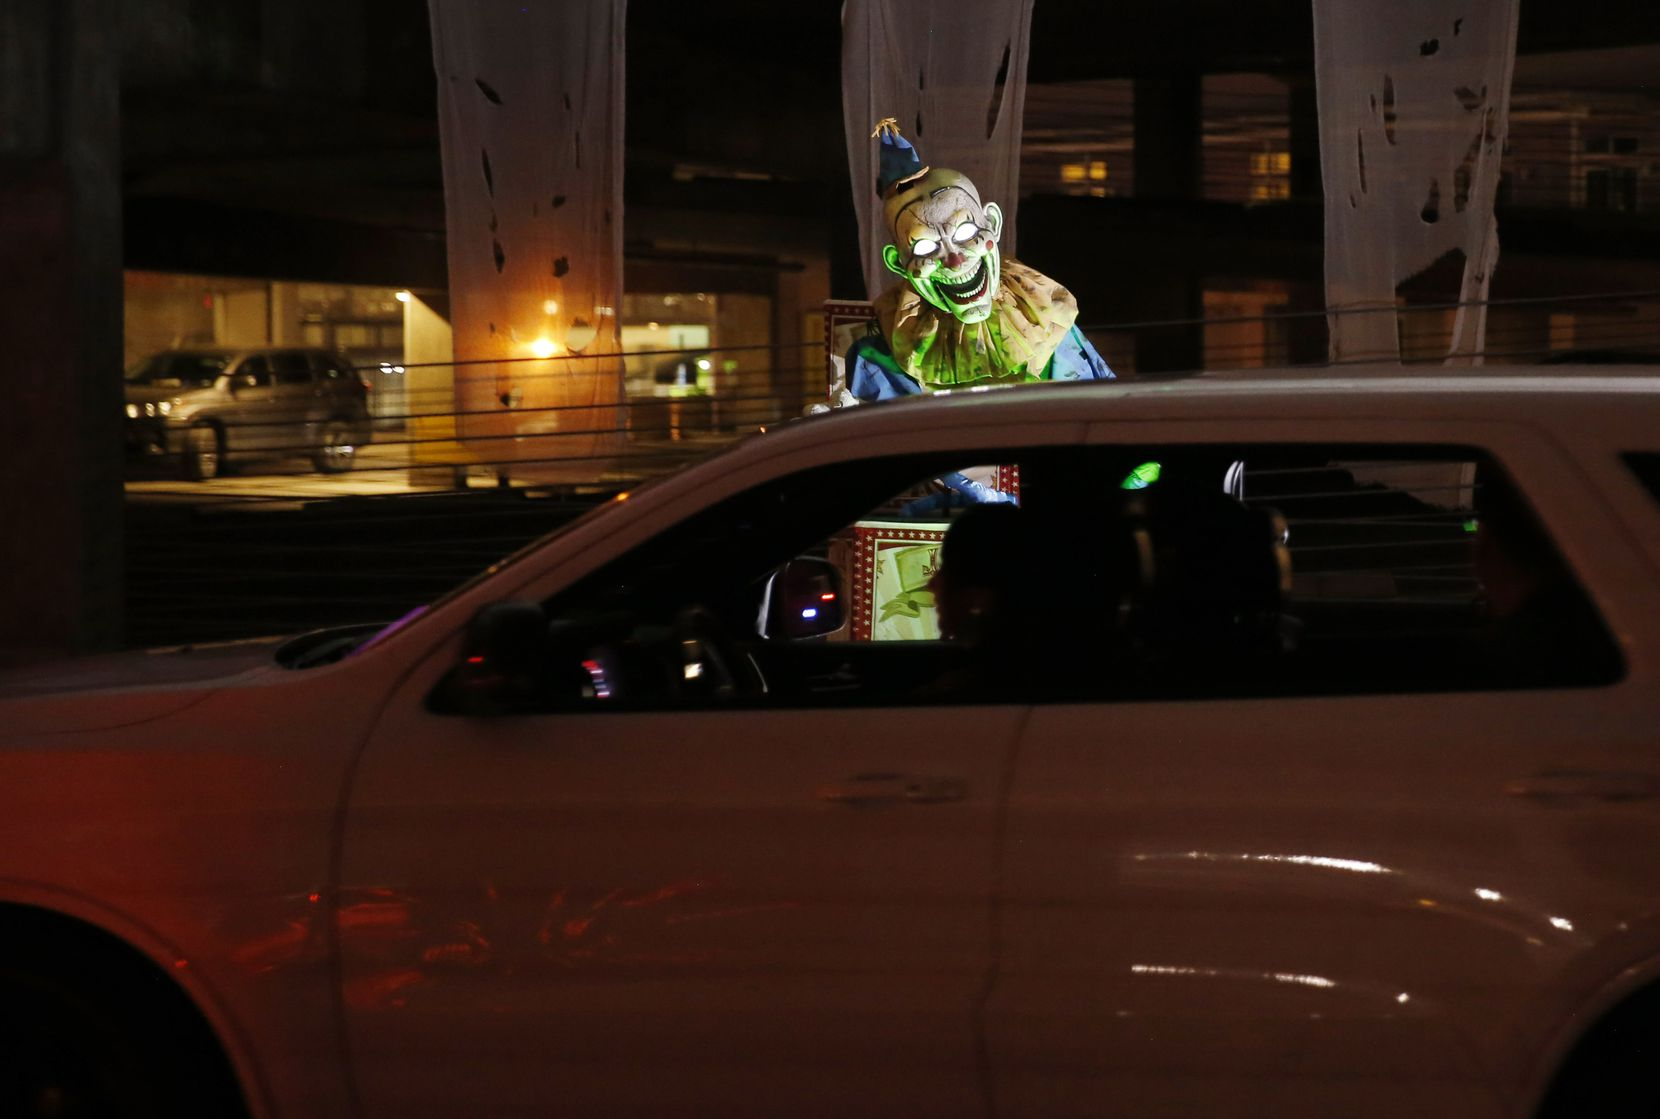 Drive Boo Halloween en el estacionamiento del American Airlines Center de Dallas.